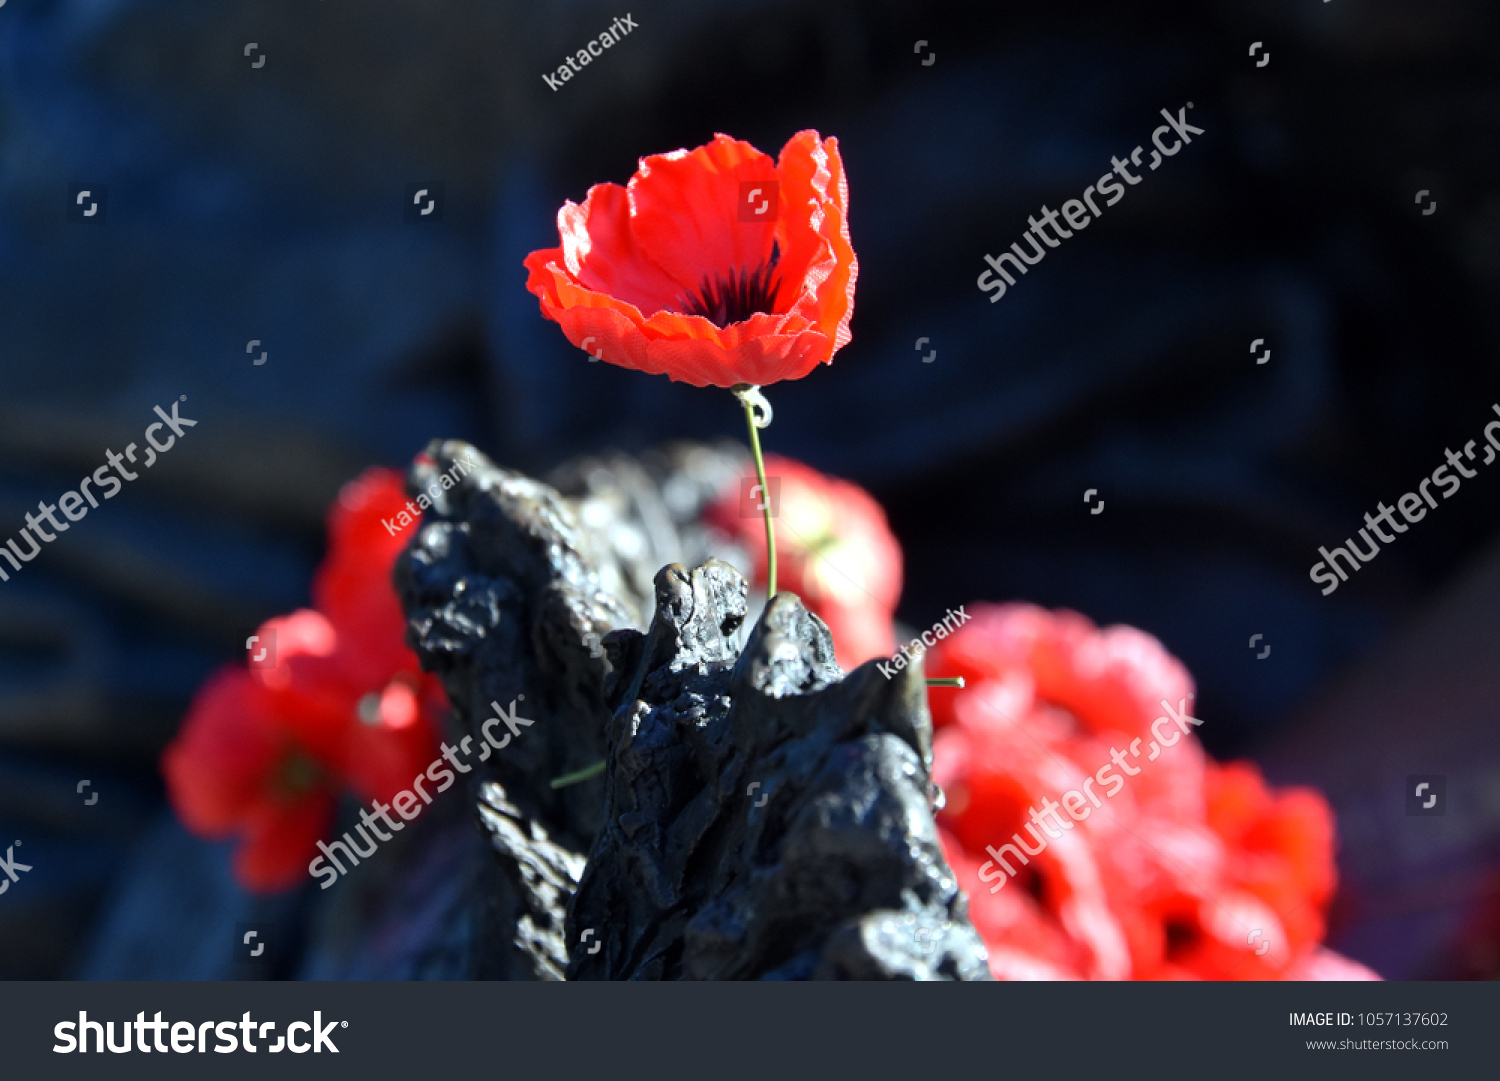 Poppies on rock australian war memorial stock photo 1057137602 poppies on a rock at the australian war memorial in canberra the red poppy has buycottarizona Images